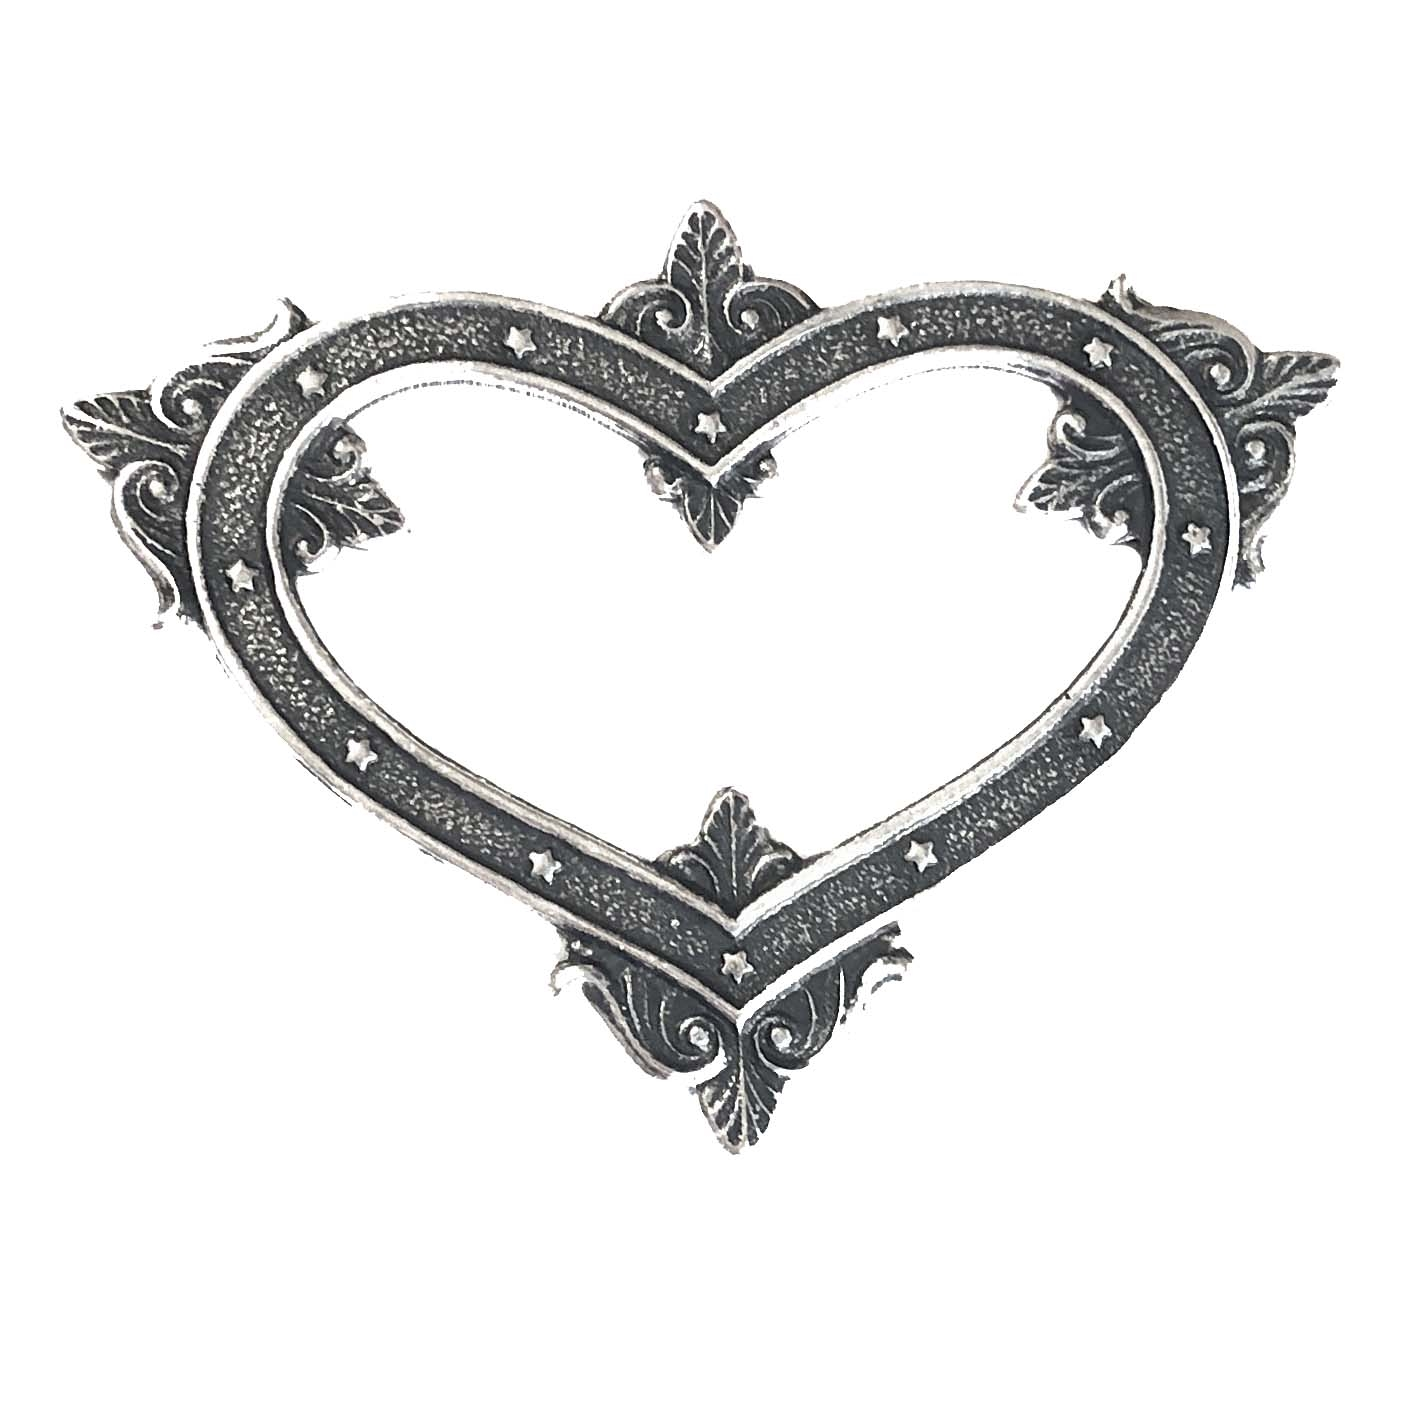 Victorian backless heart stamping, silverware silver plate, backless, heart, brass stamping, backless heart, brass, US made, nickel free, B'sue Boutiques, jewelry making, jewelry supplies, vintage supplies, Victorian design, 09590